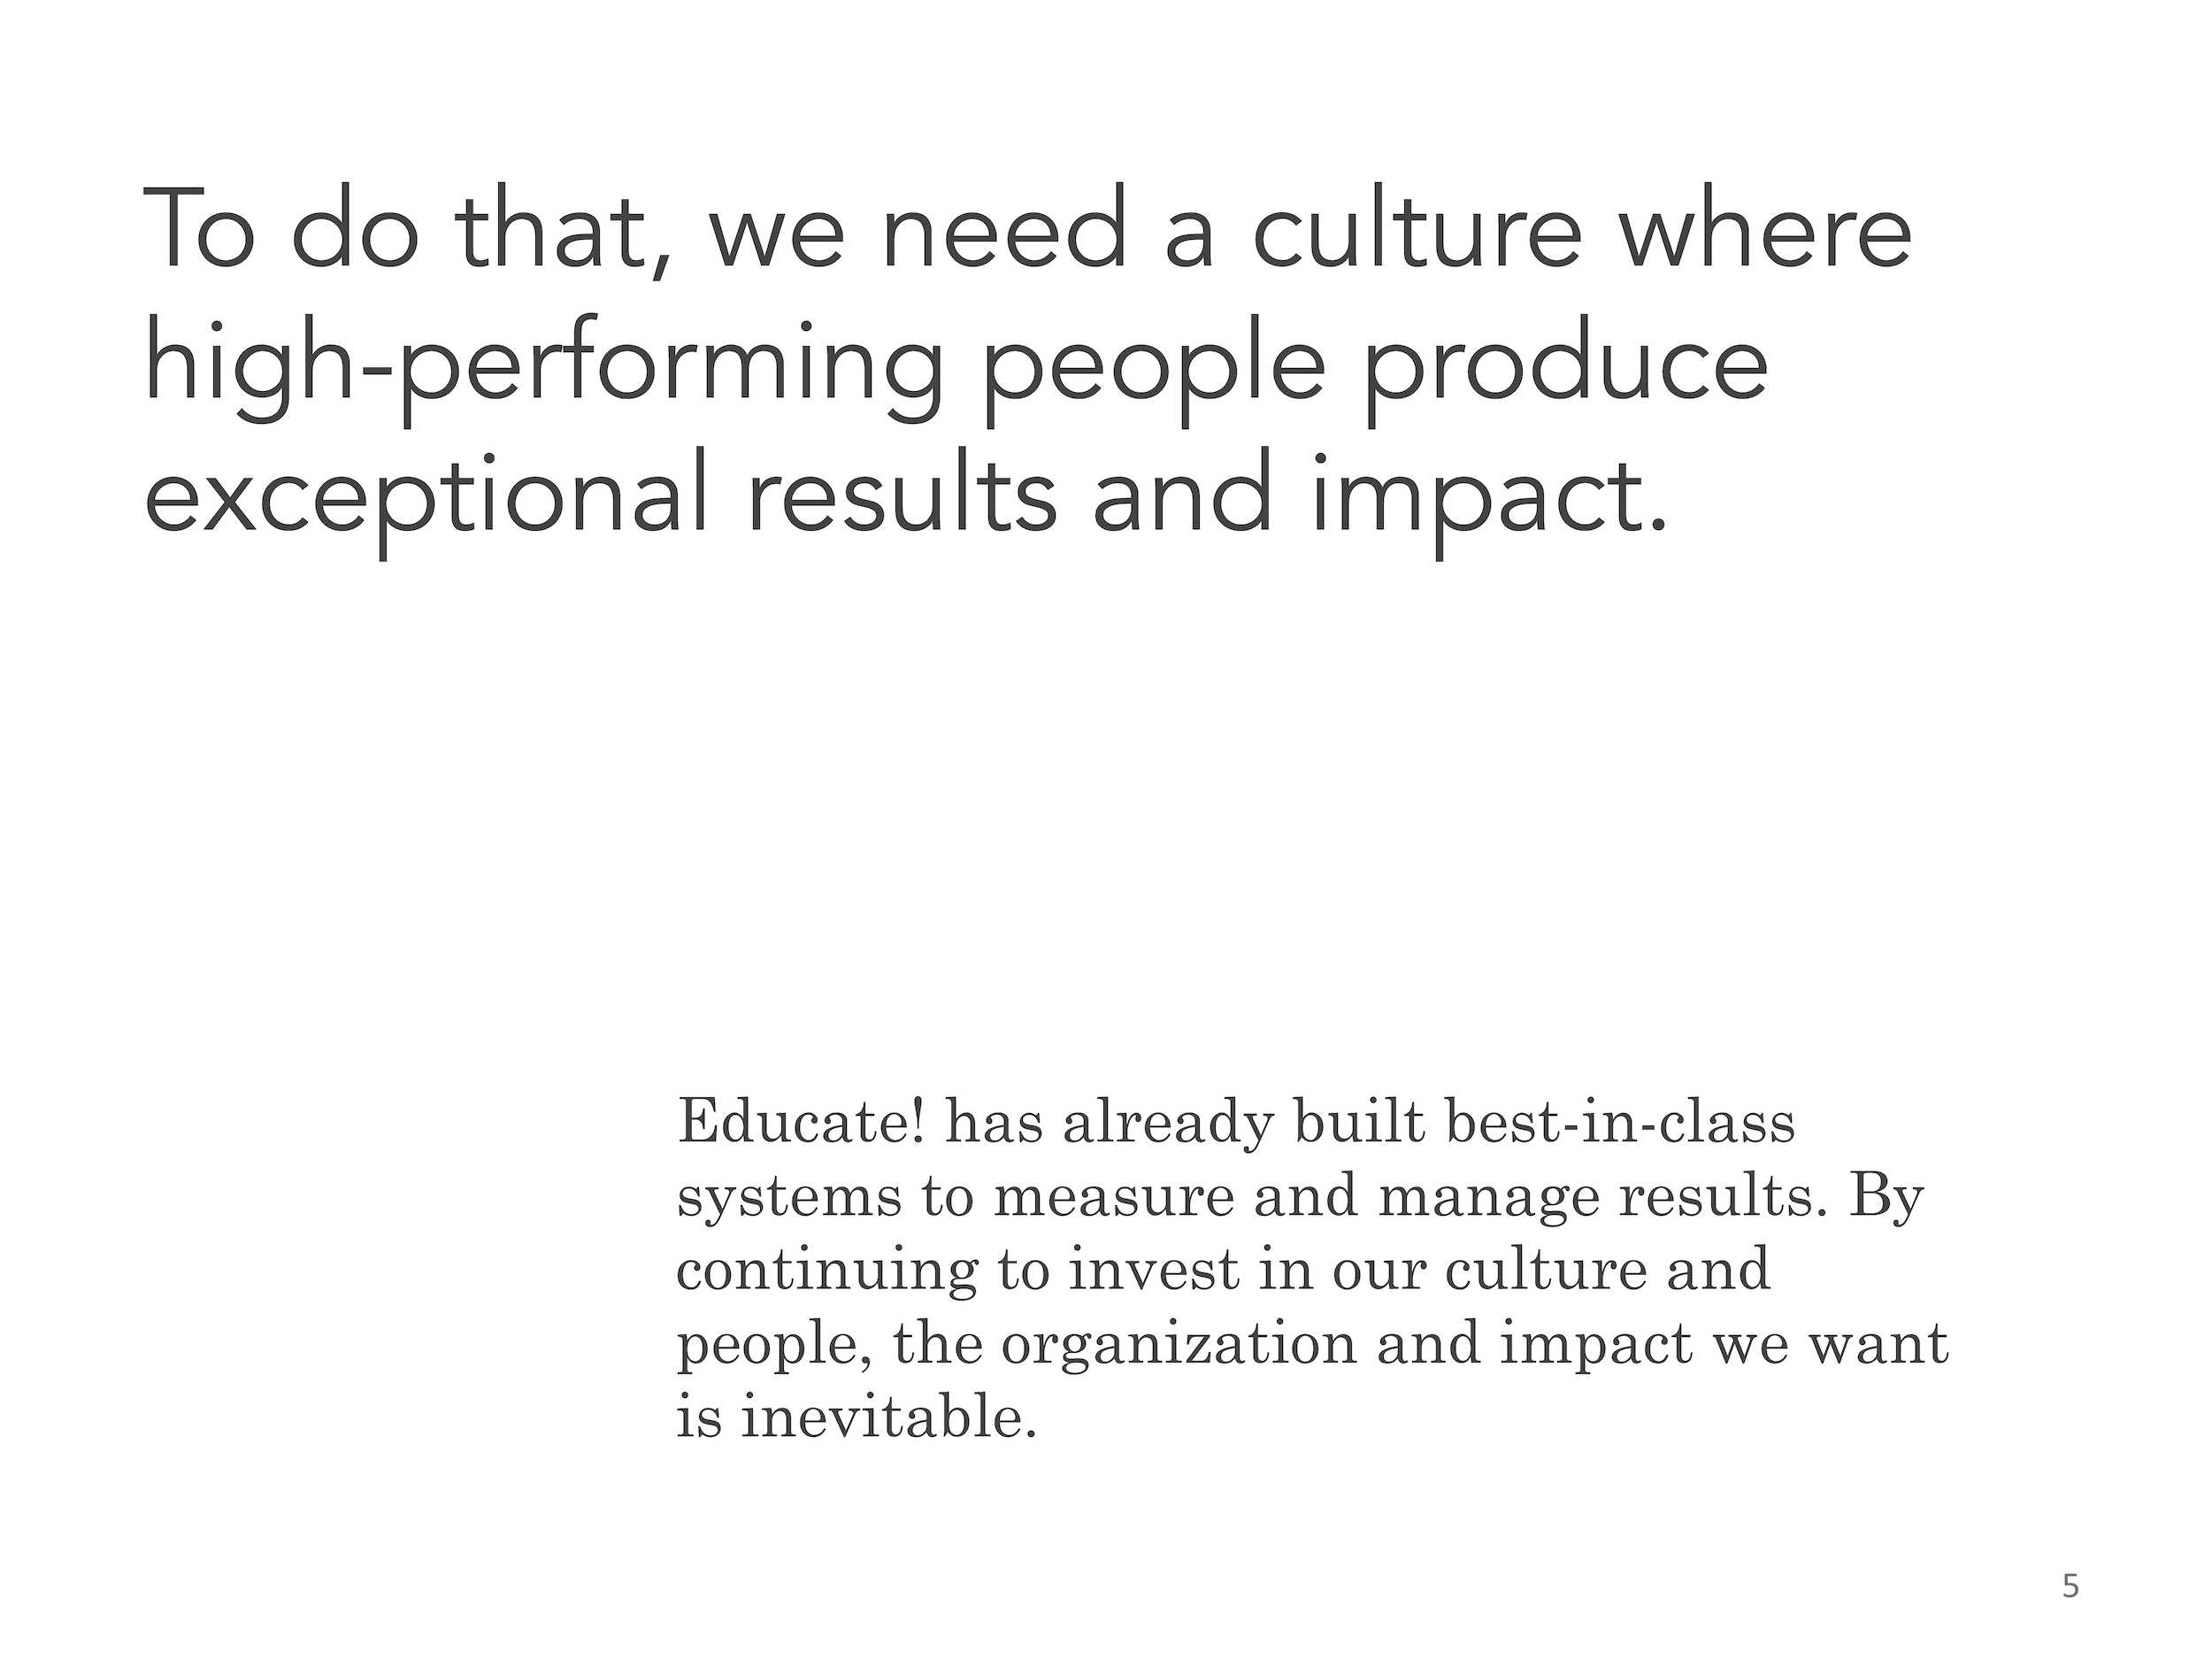 Educate! Culture Deck_Page_05.png